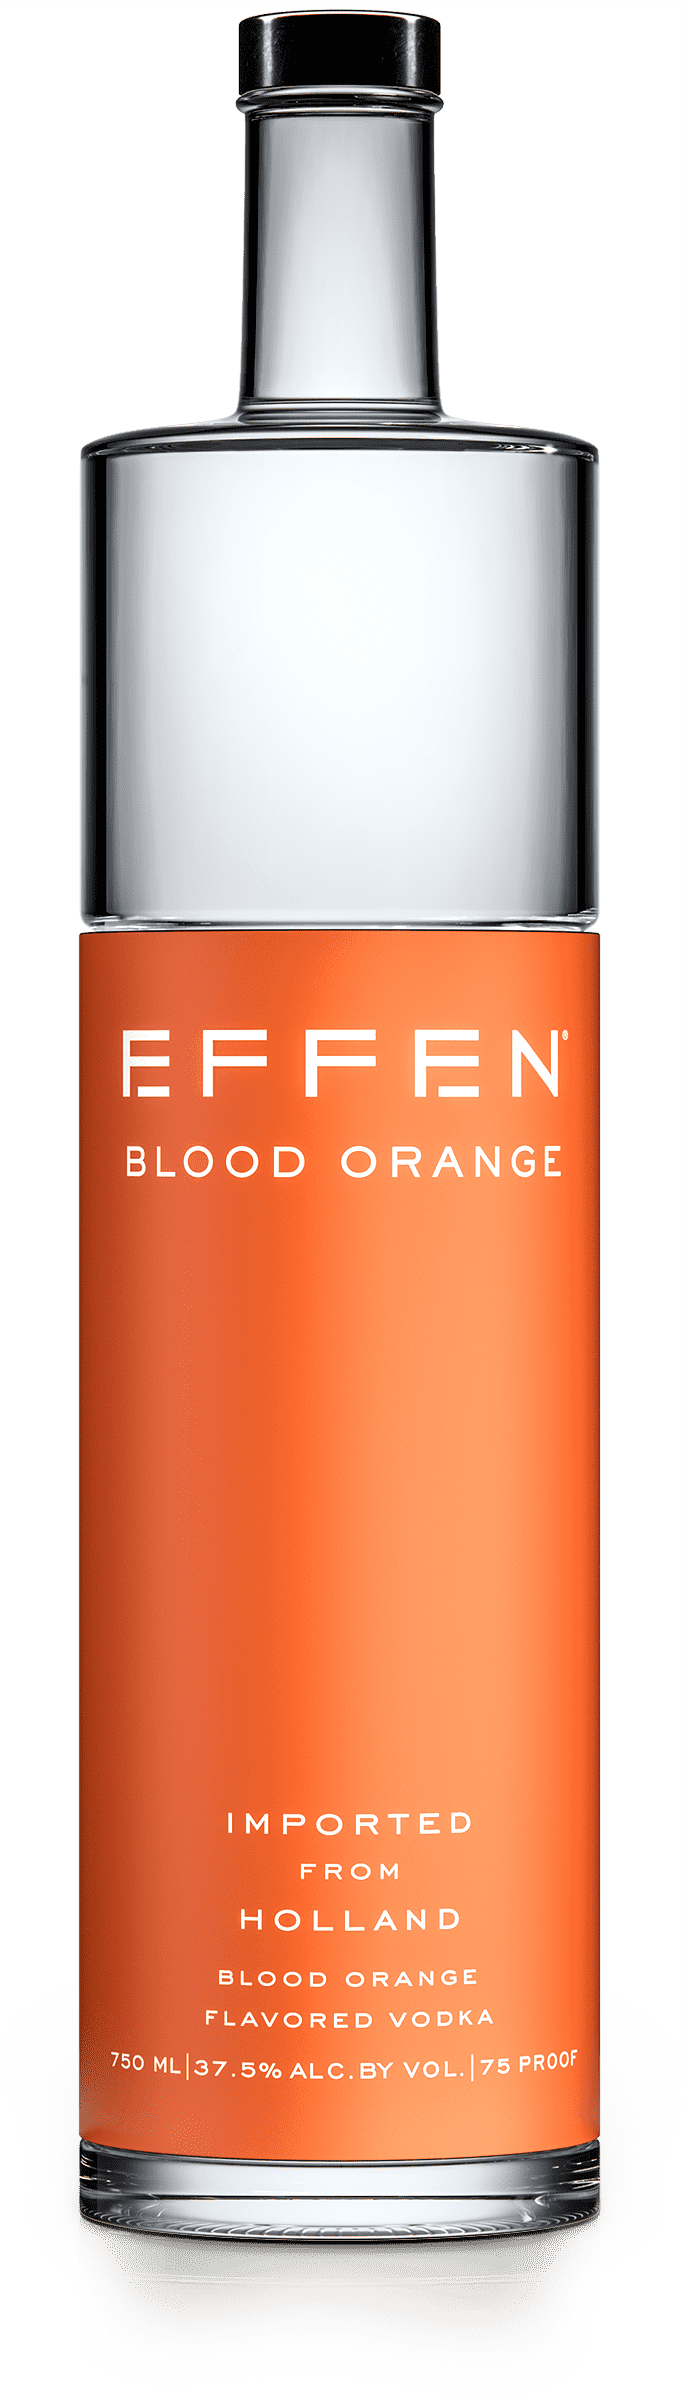 EFFEN Blood Orange Vodka bottle shot